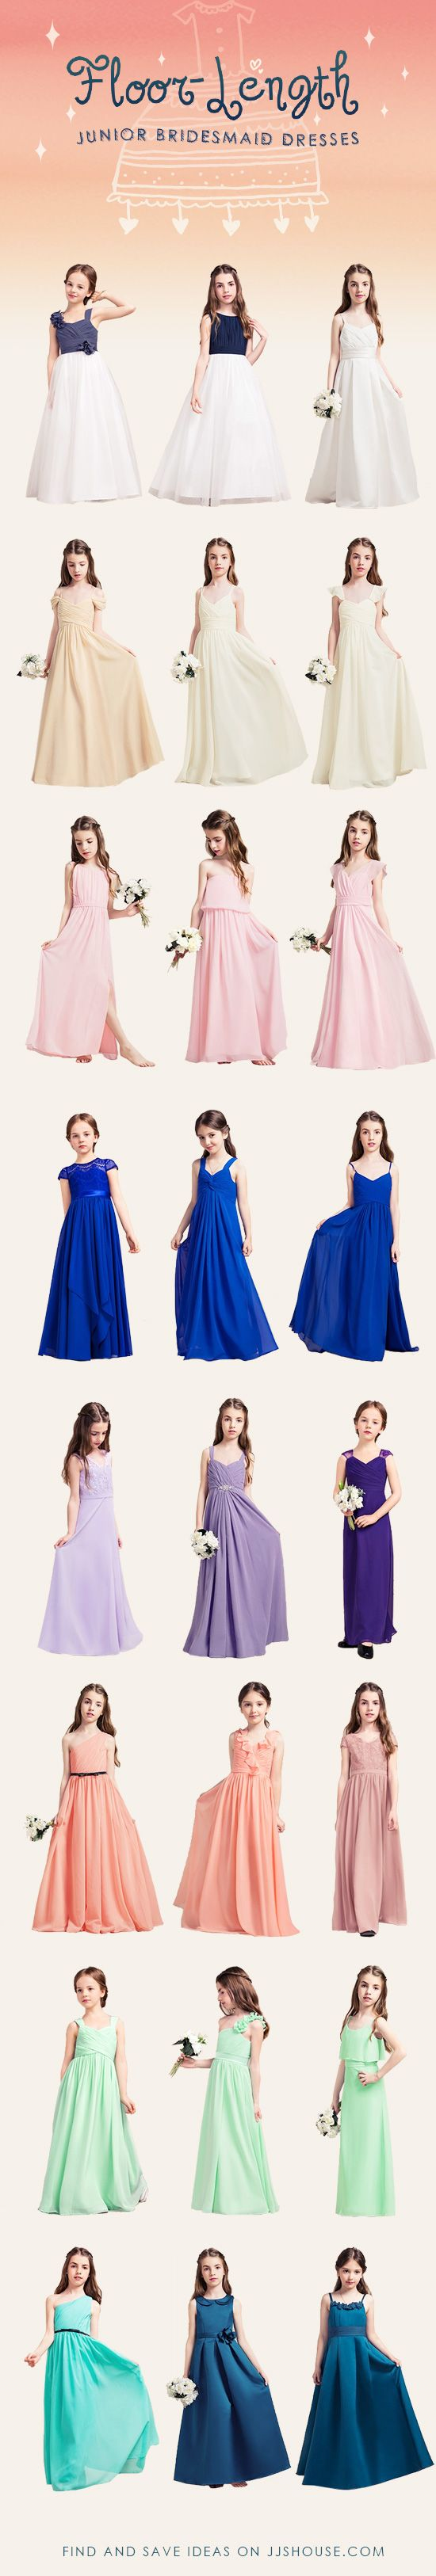 Floor Length Junior Bridesmaid Dresses Find And Save Ideas On JJSHOUSECOM